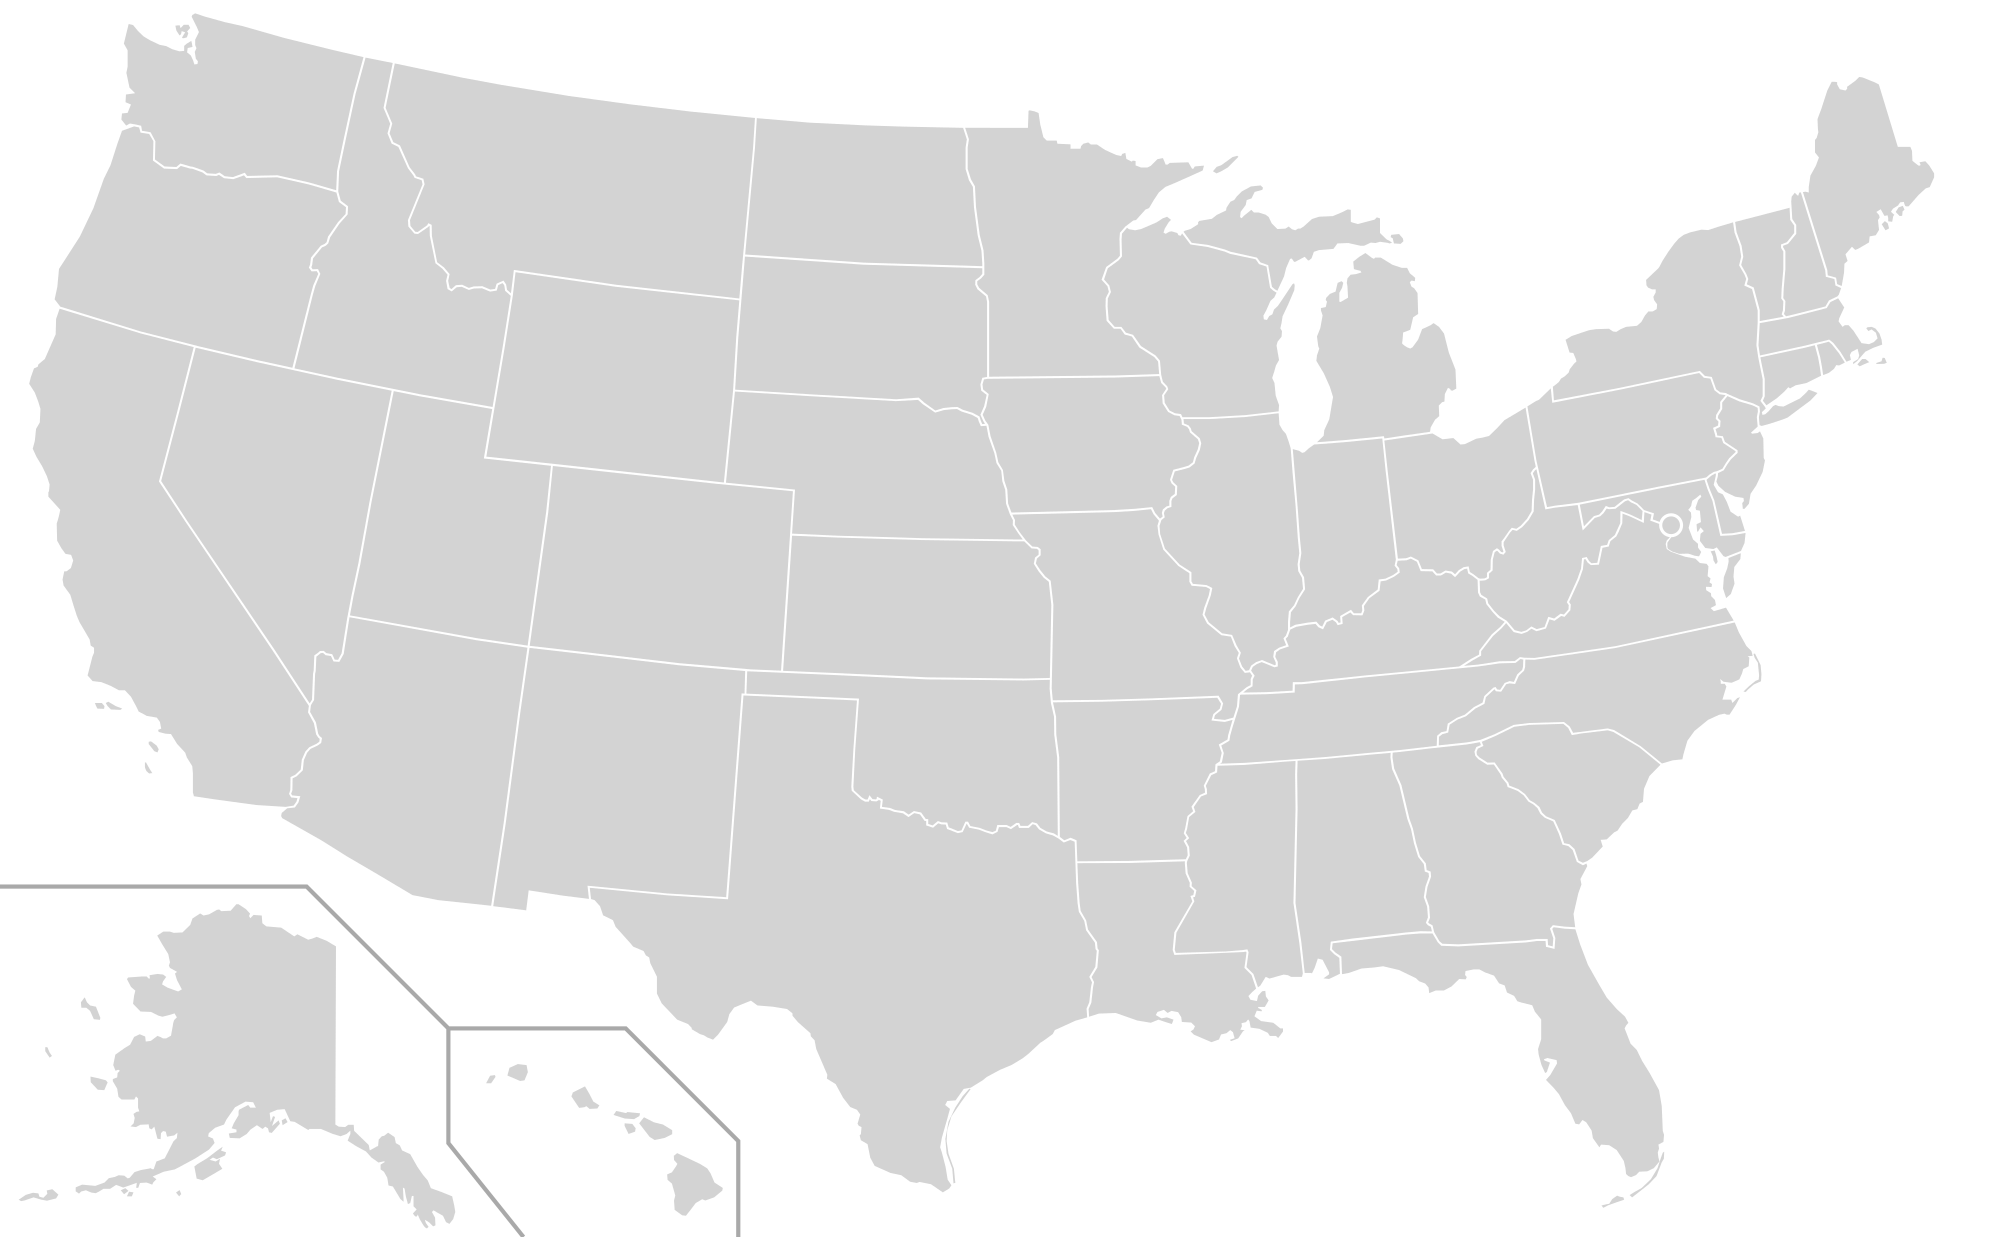 Us Map Vector At Getdrawingscom Free For Personal Use Us Map - Black-and-white-us-map-with-states